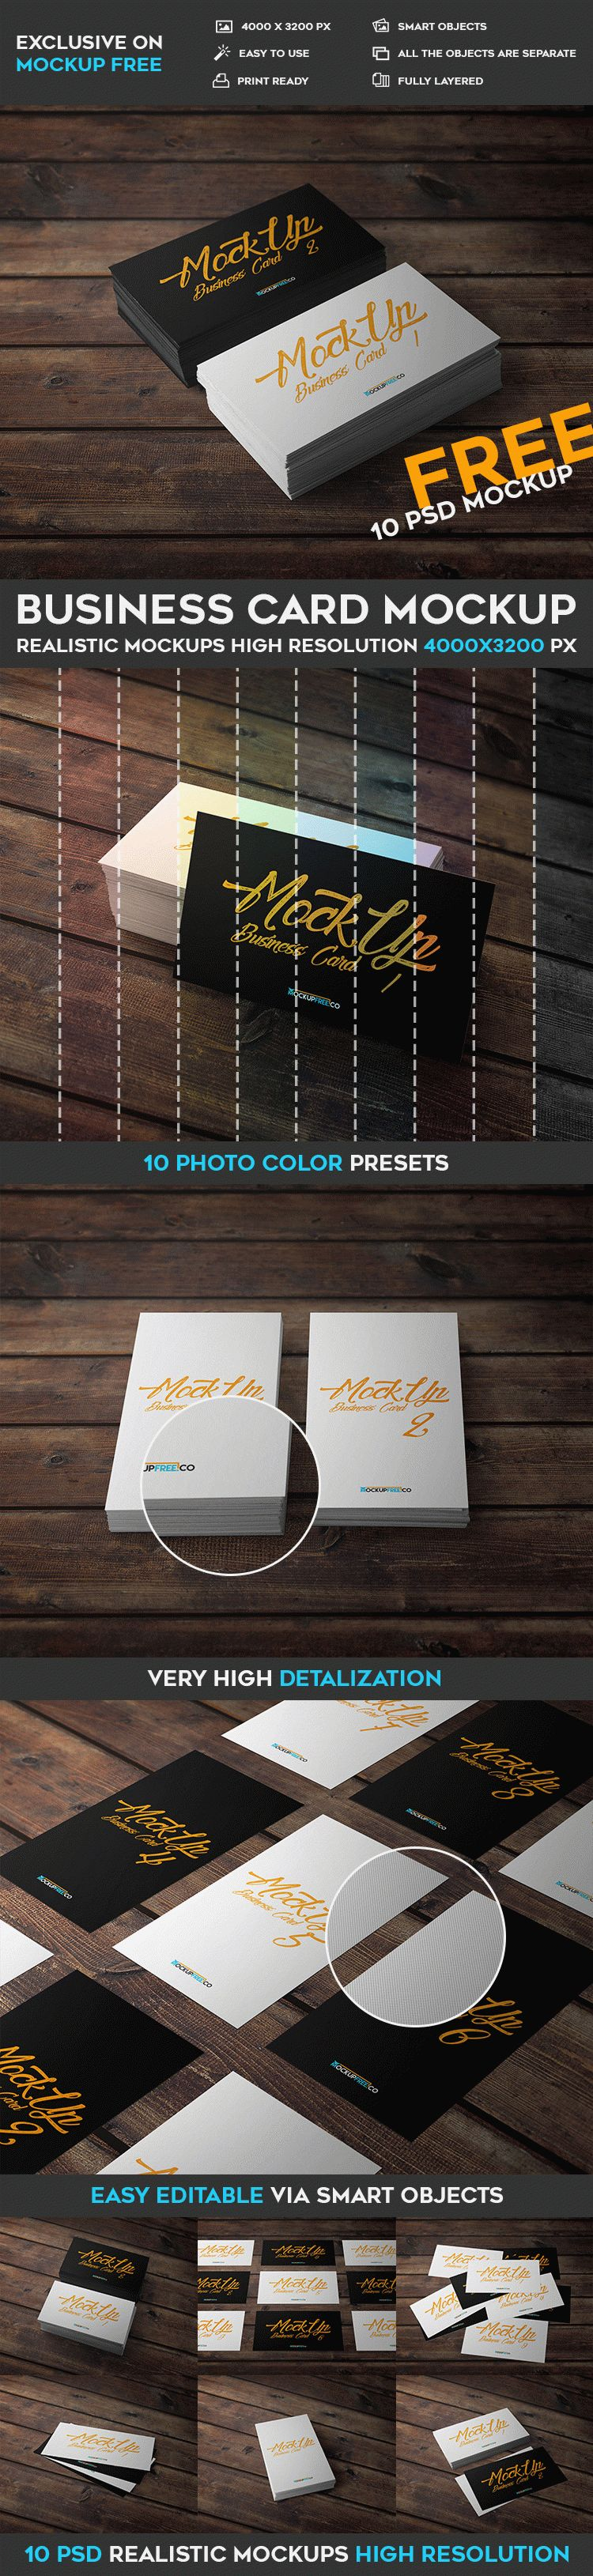 Business Card - 10 Free PSD Mockups